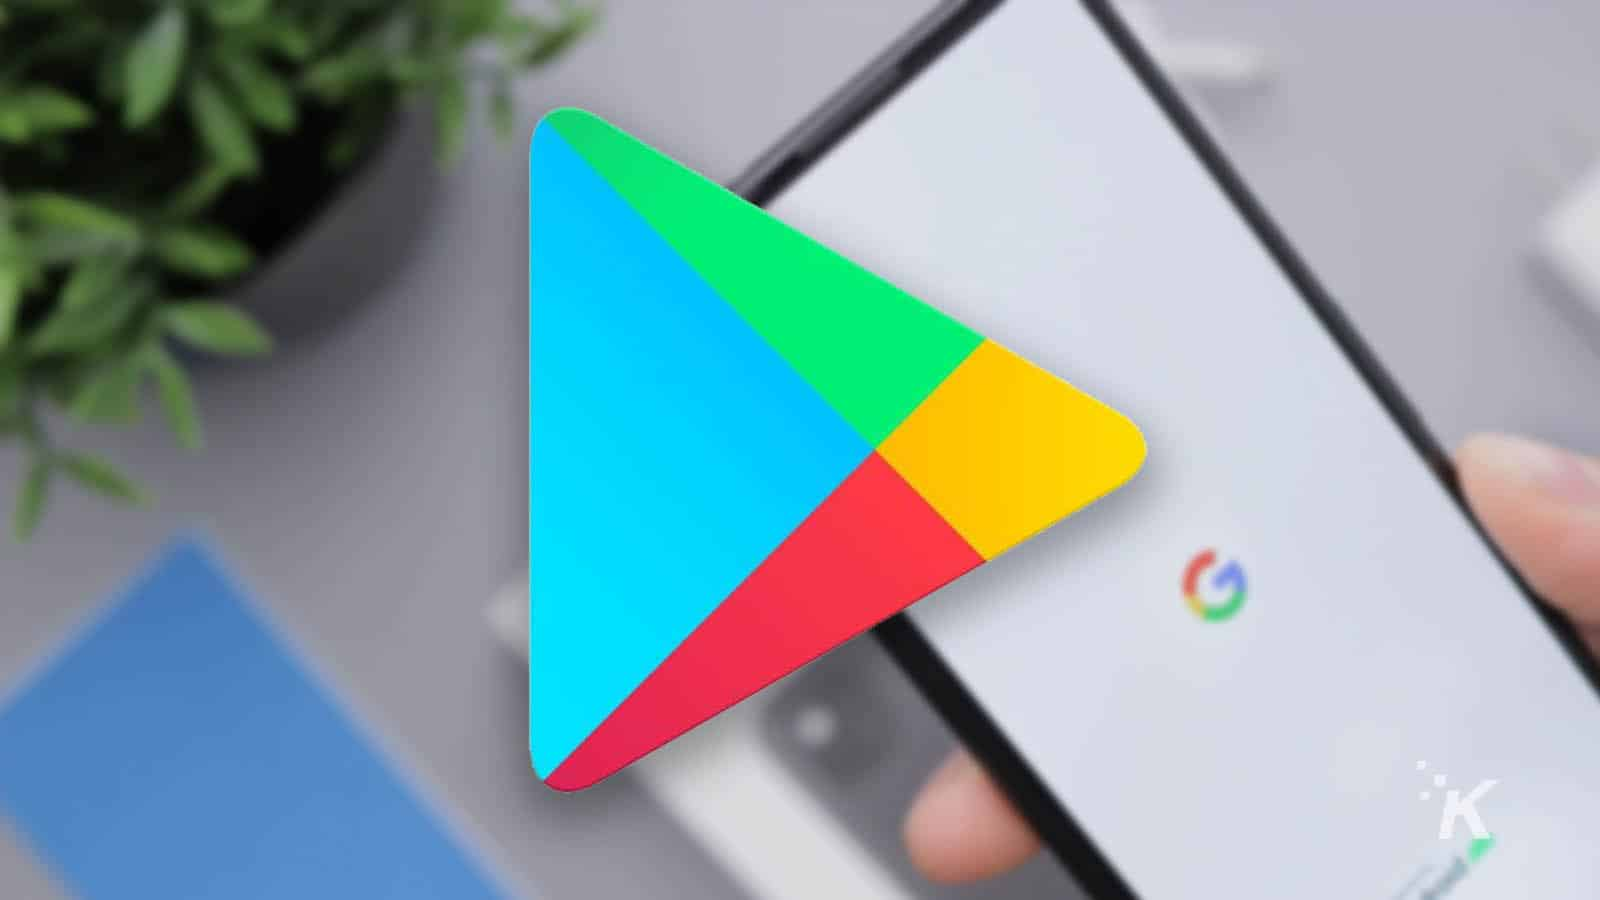 google play store logo with blurred background